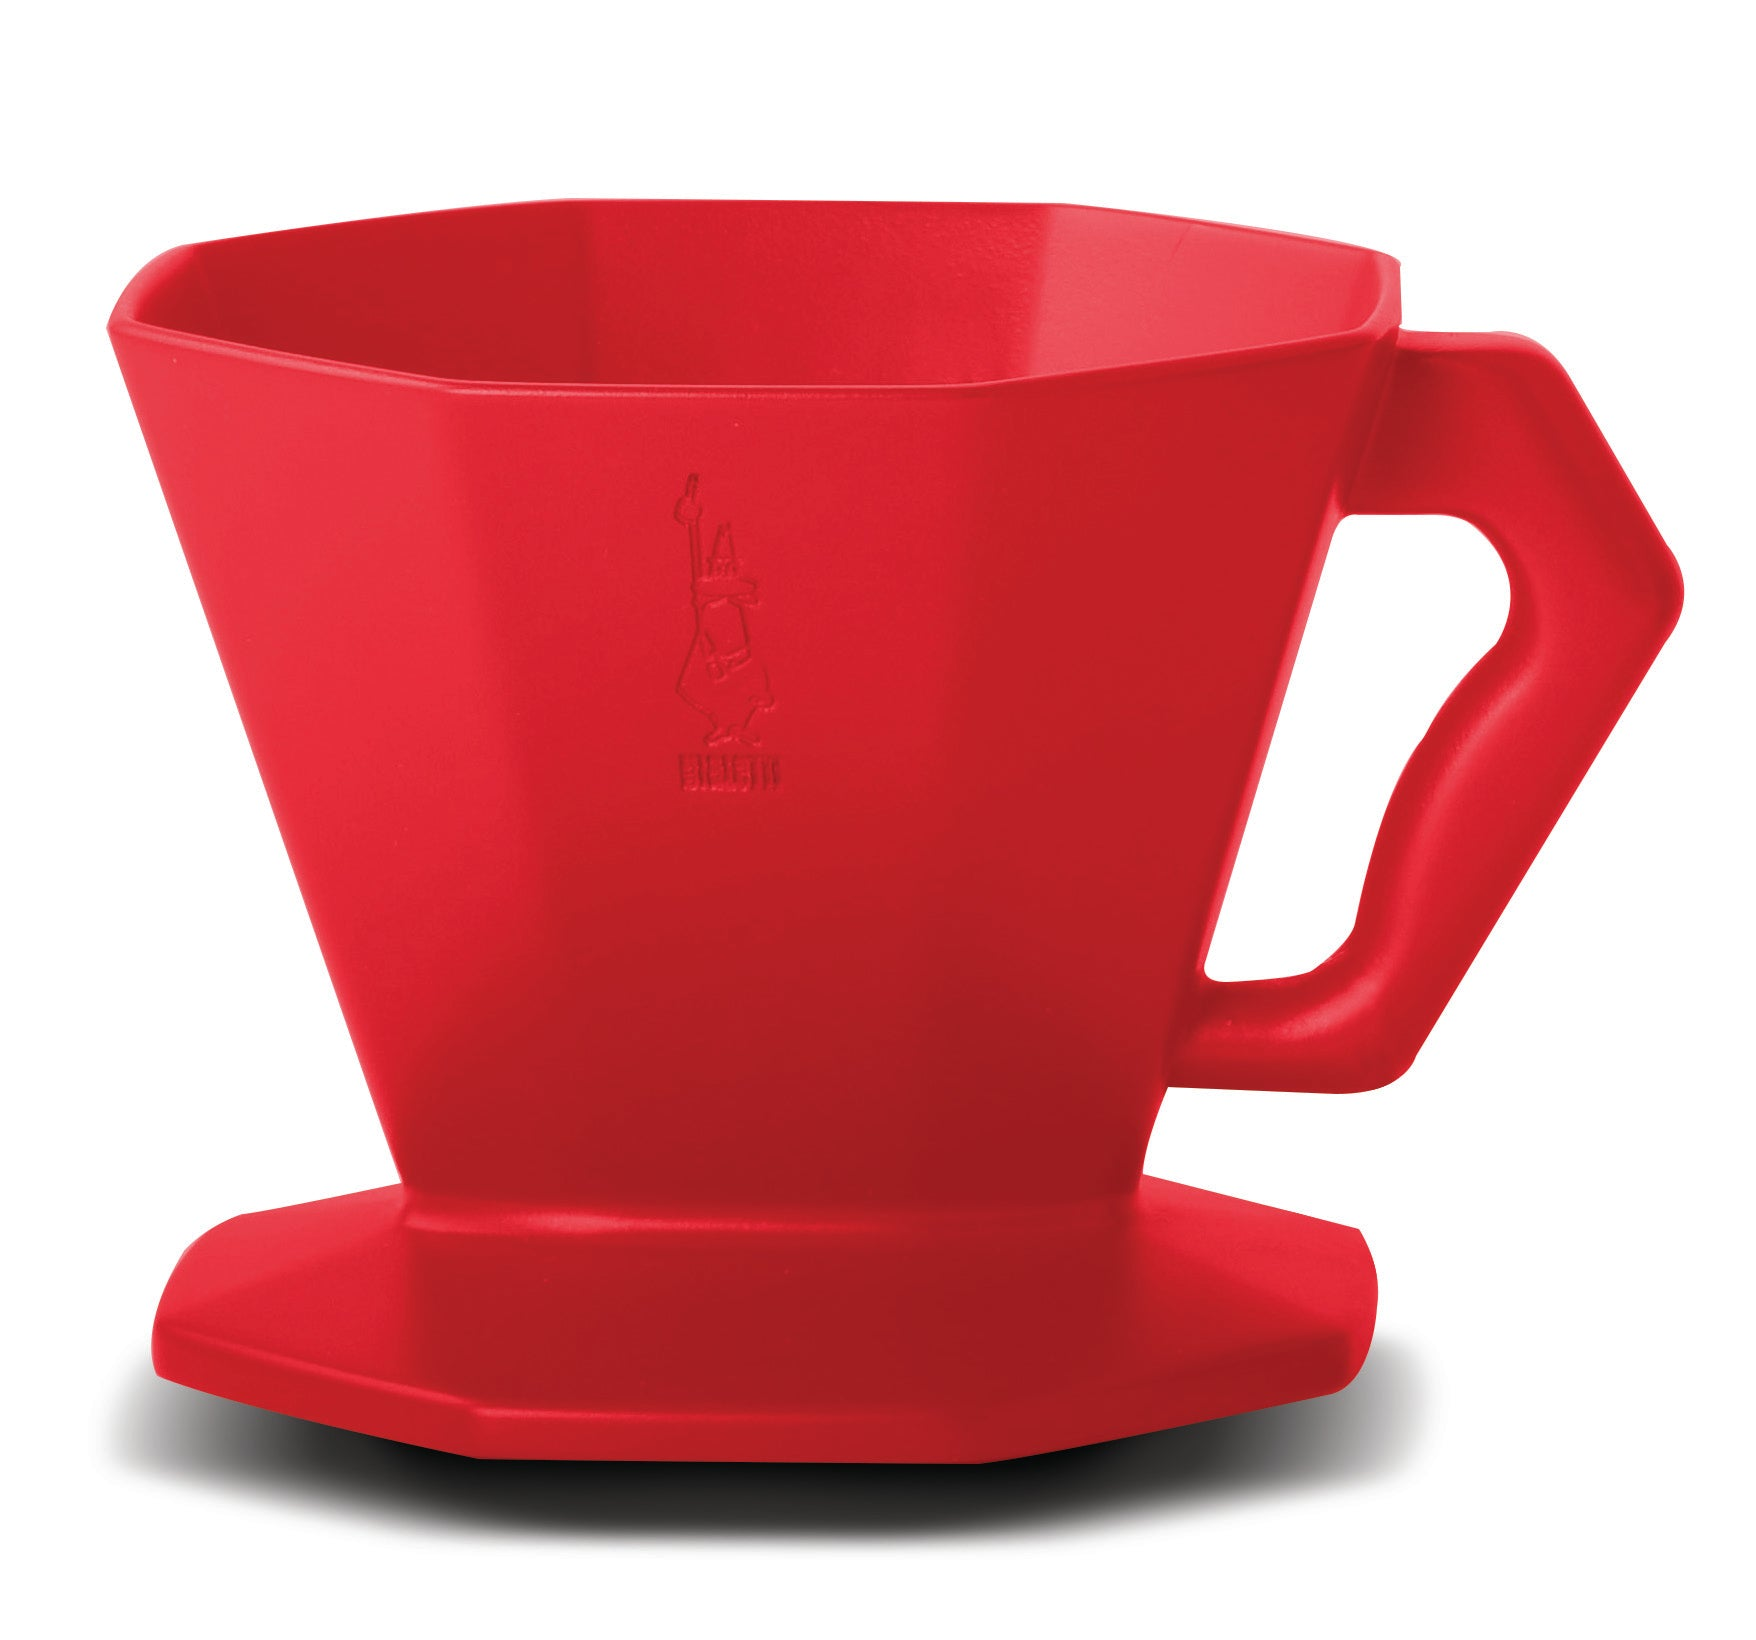 Bialetti Plastic Pour Over - Red 2 Cup